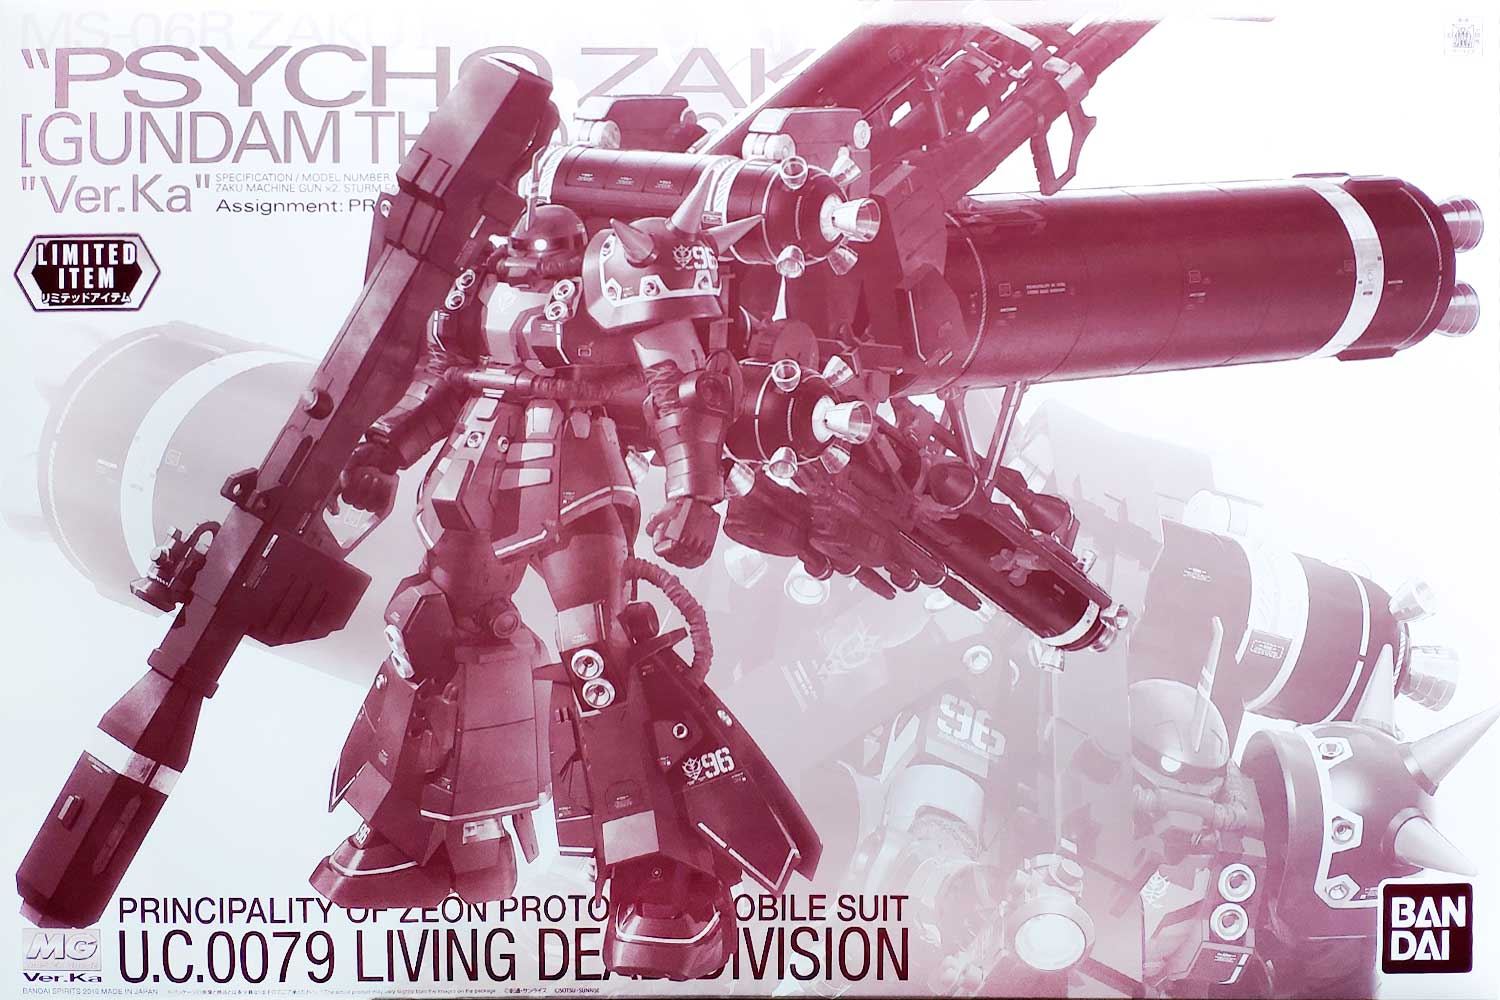 BANDAI GUN68955 GUNPLA MG 1/100ZAKU HIGH MOB PSYCHO Ver KA CLEAR